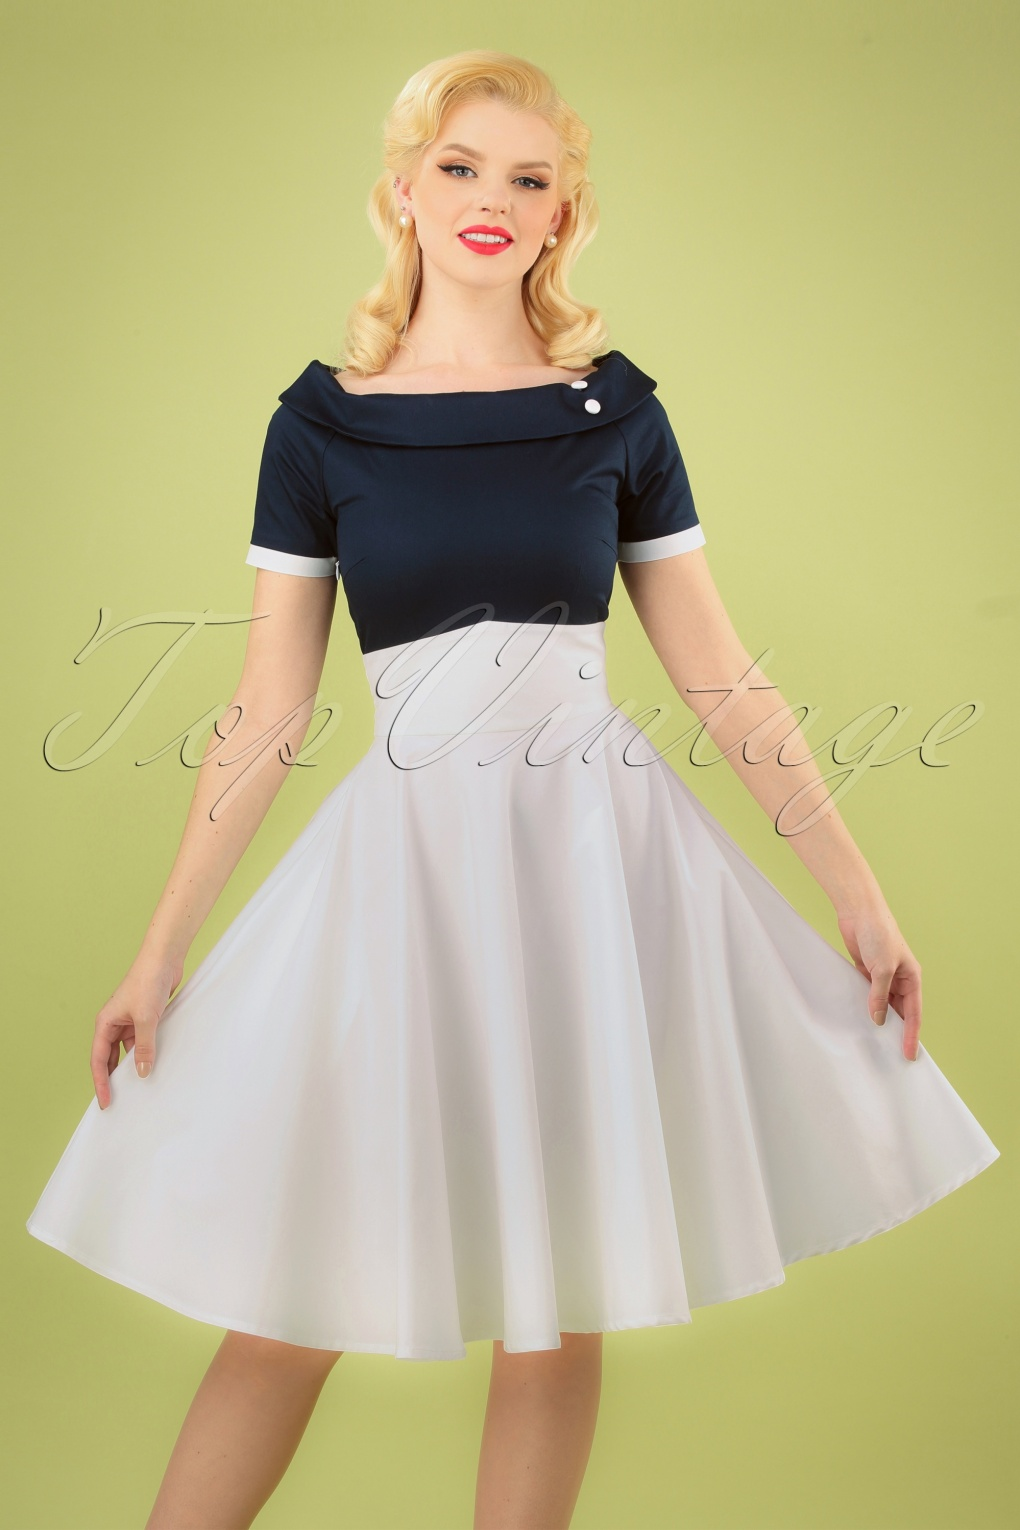 50 Vintage Inspired Clothing Stores 50s Darlene Swing Dress in Navy and White £51.76 AT vintagedancer.com